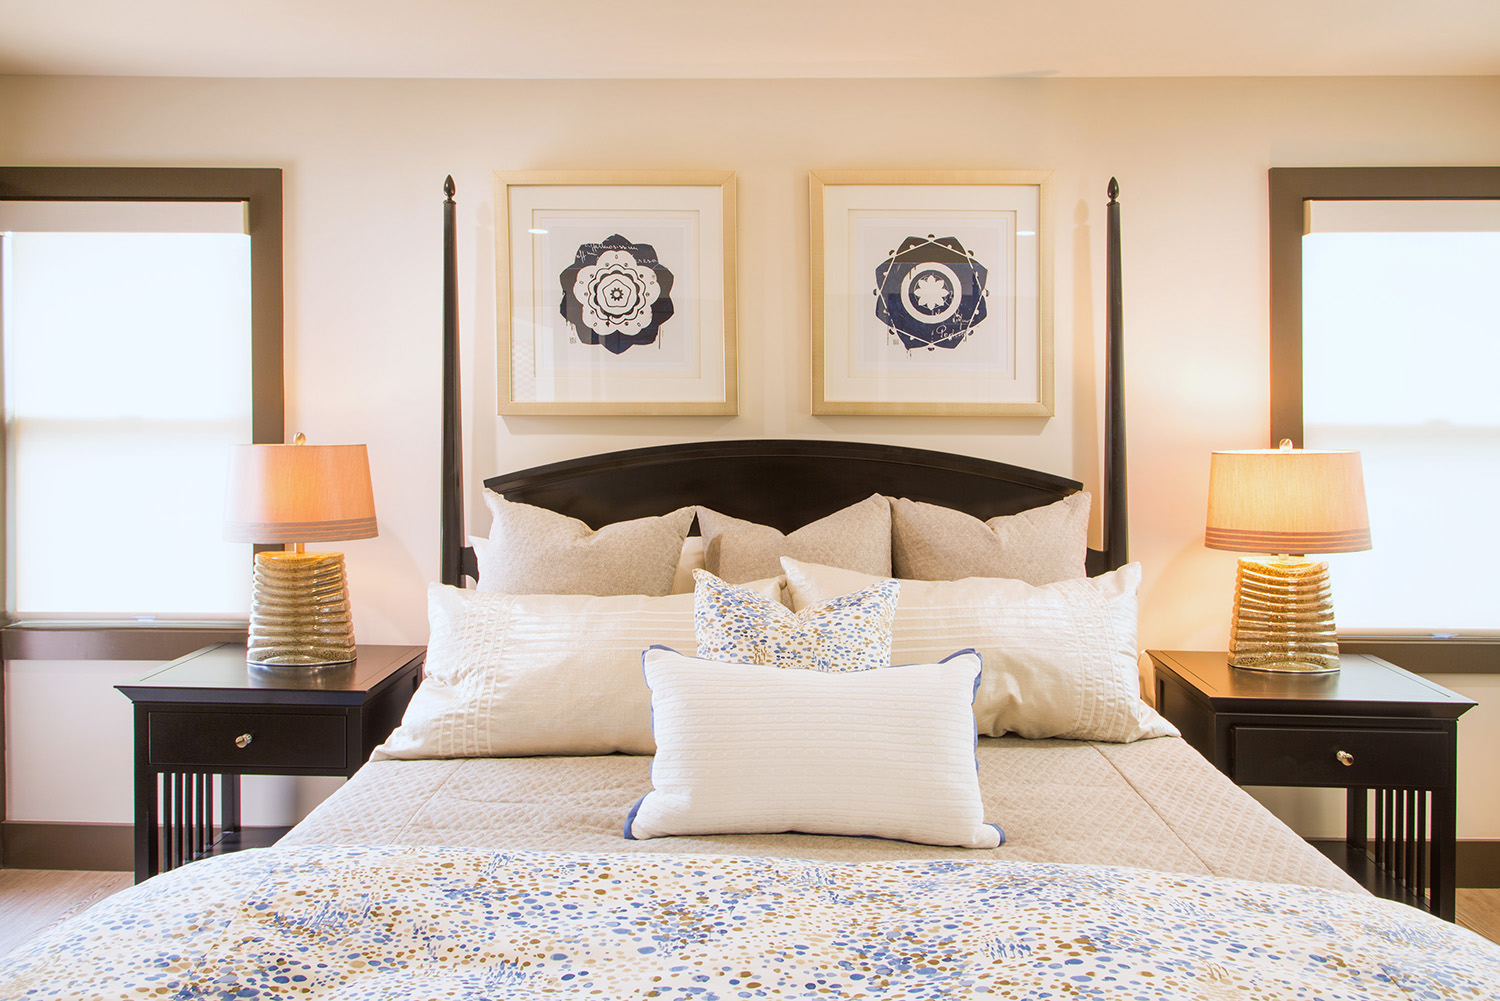 bedroom-interior-design-los-altos-california-ktj-design-co-2.jpg